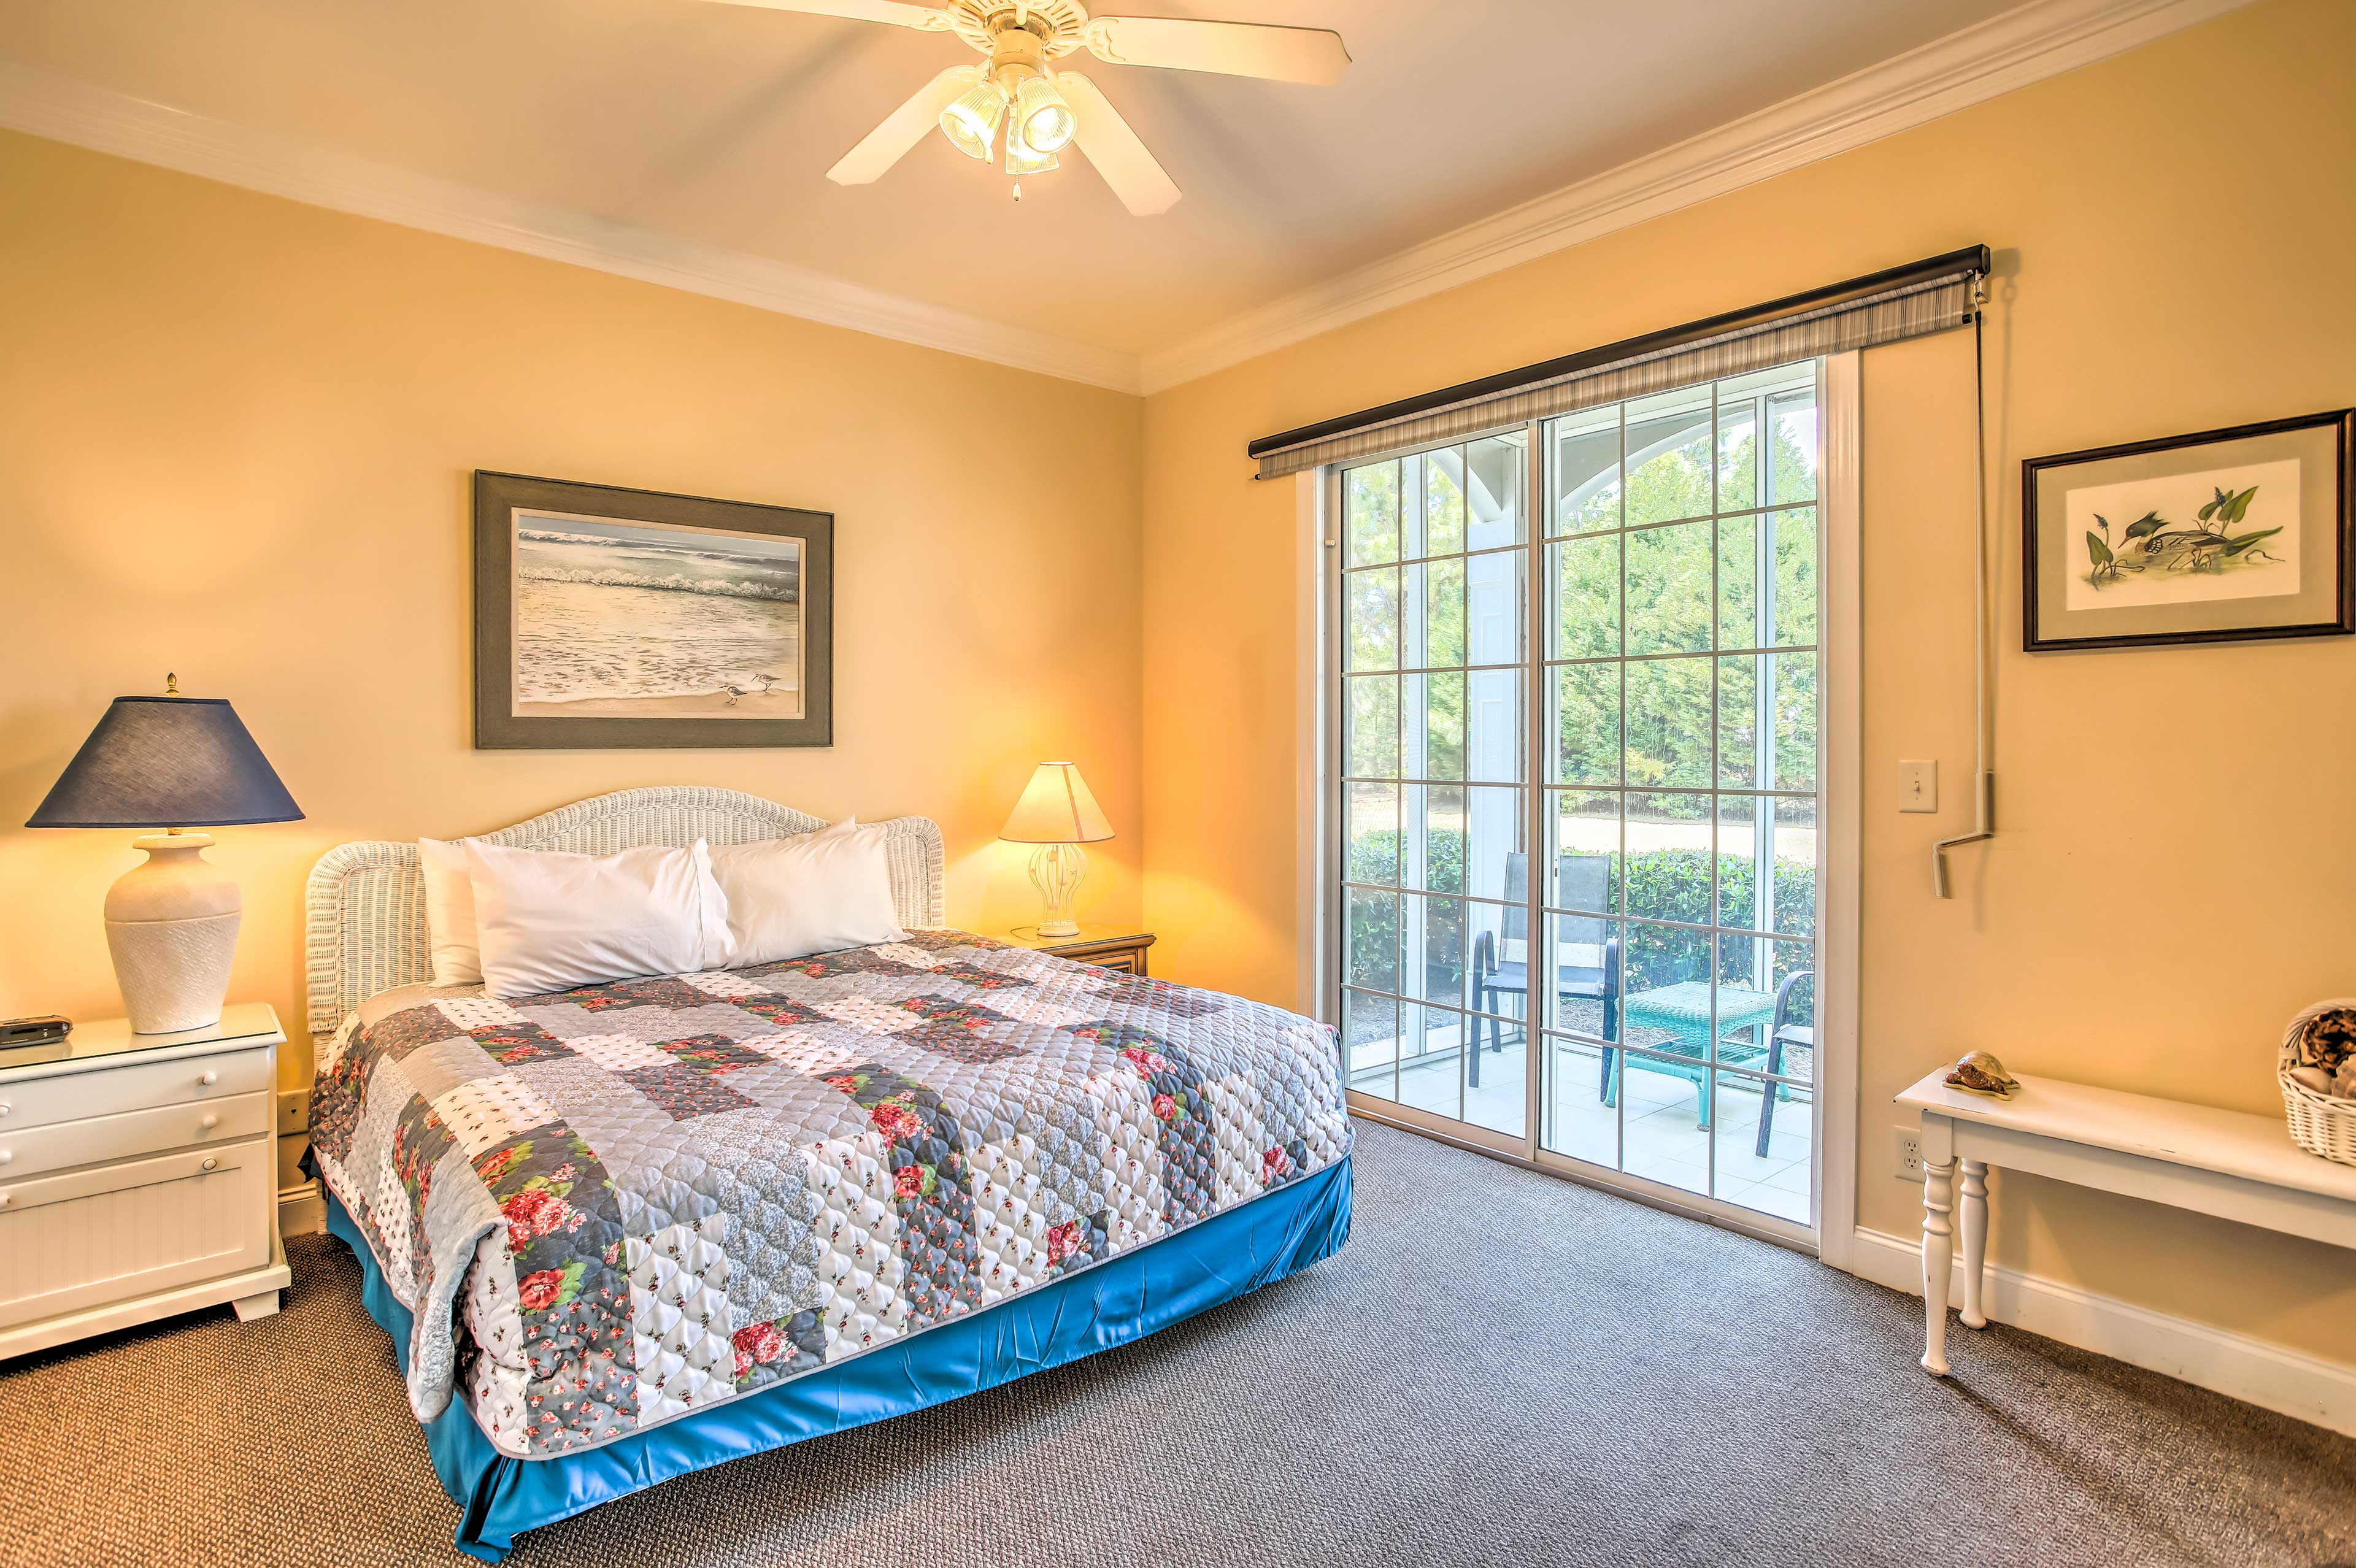 Make your way to the master bedroom for peaceful slumbers.